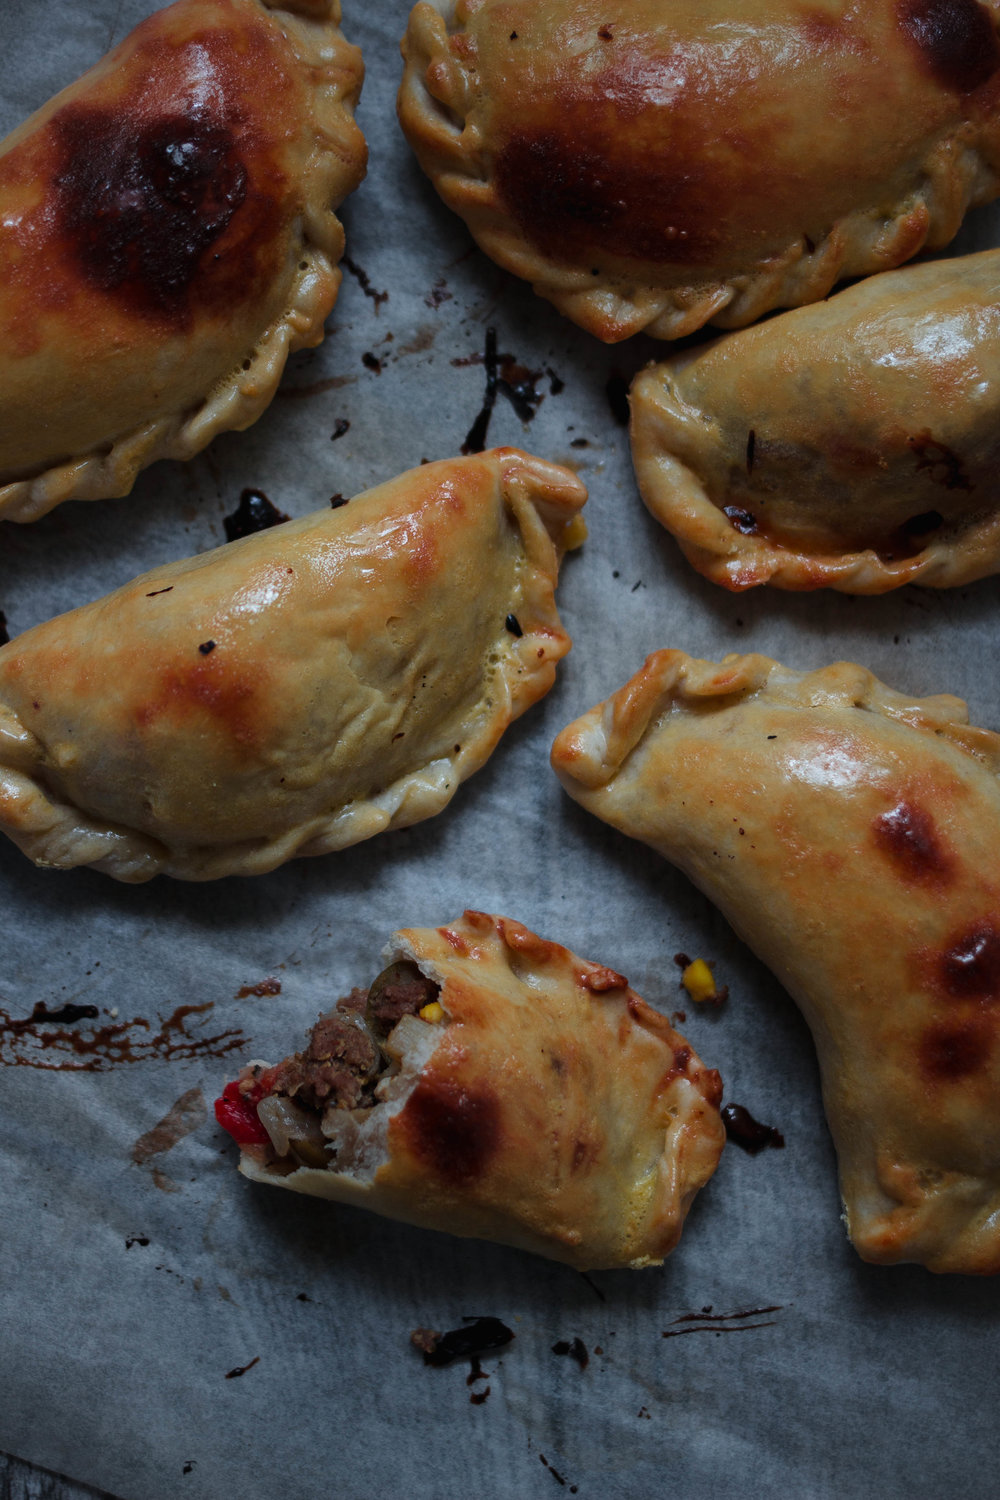 Recipe for Argentinean beef empanadas with homemade empanada dough/shells | from scratch, mostly